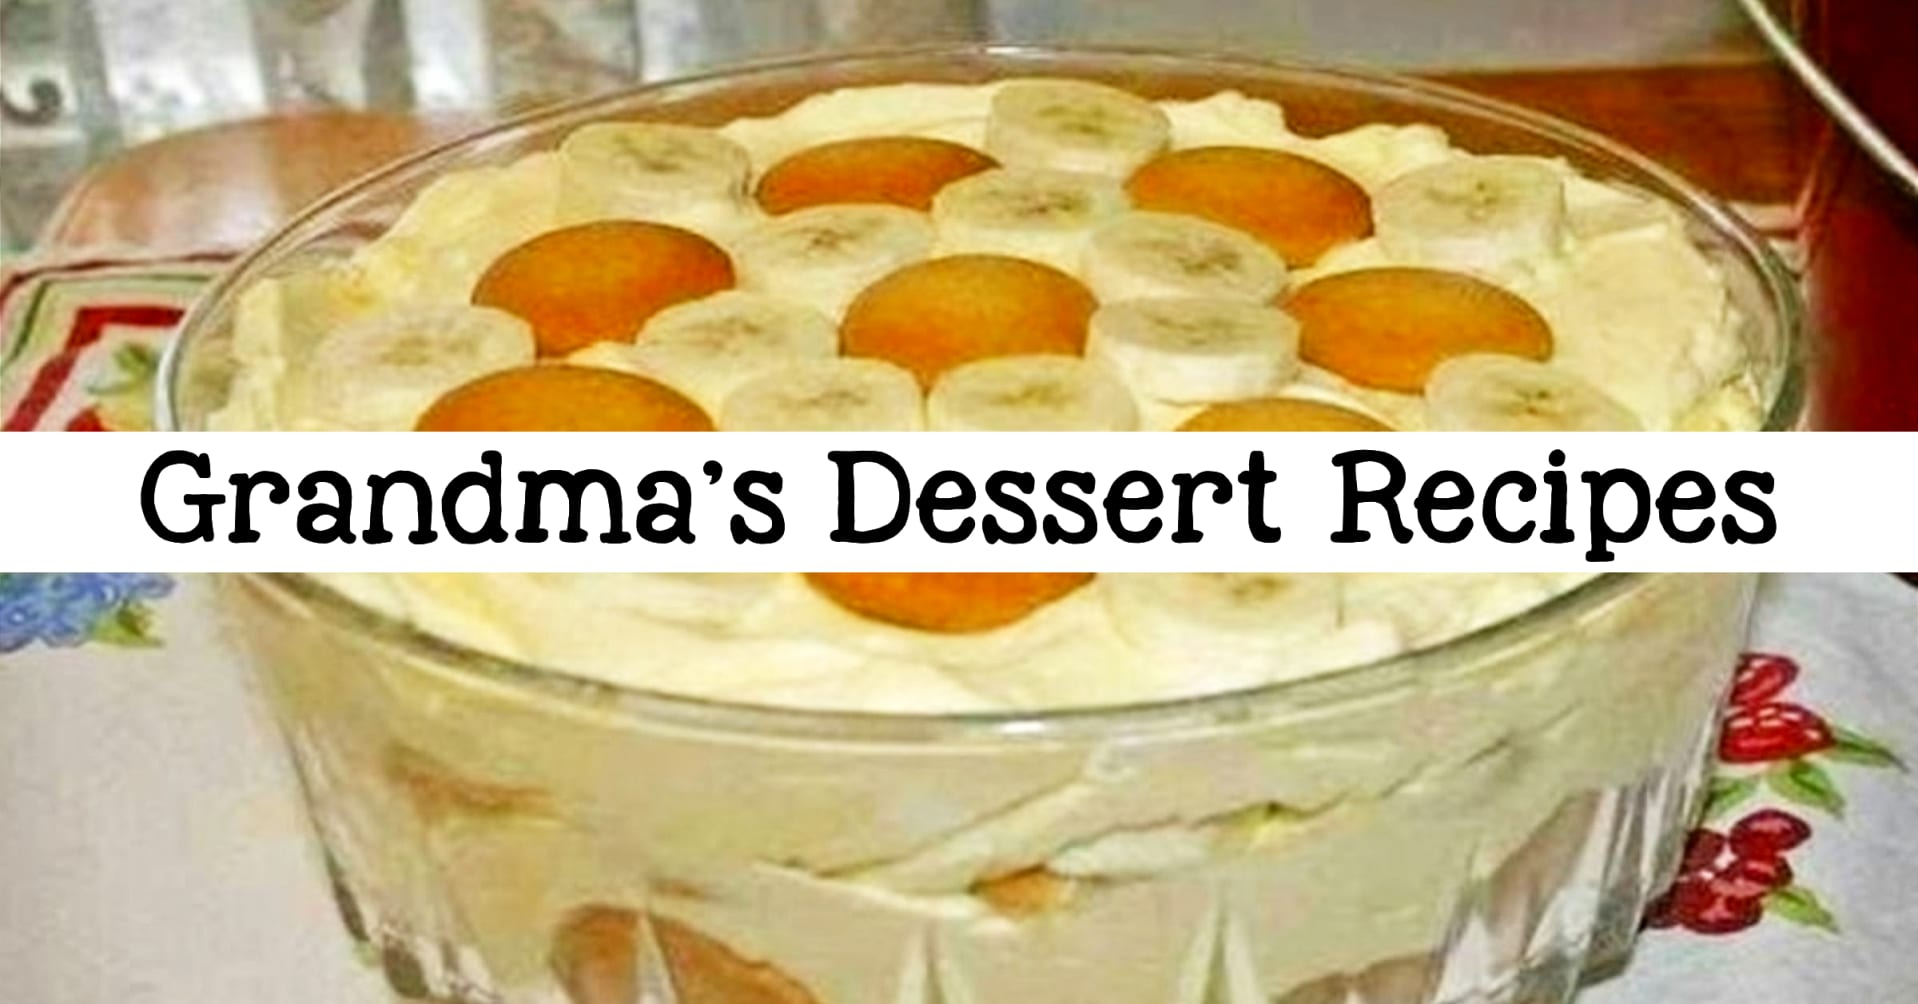 Grandma's Dessert Recipes